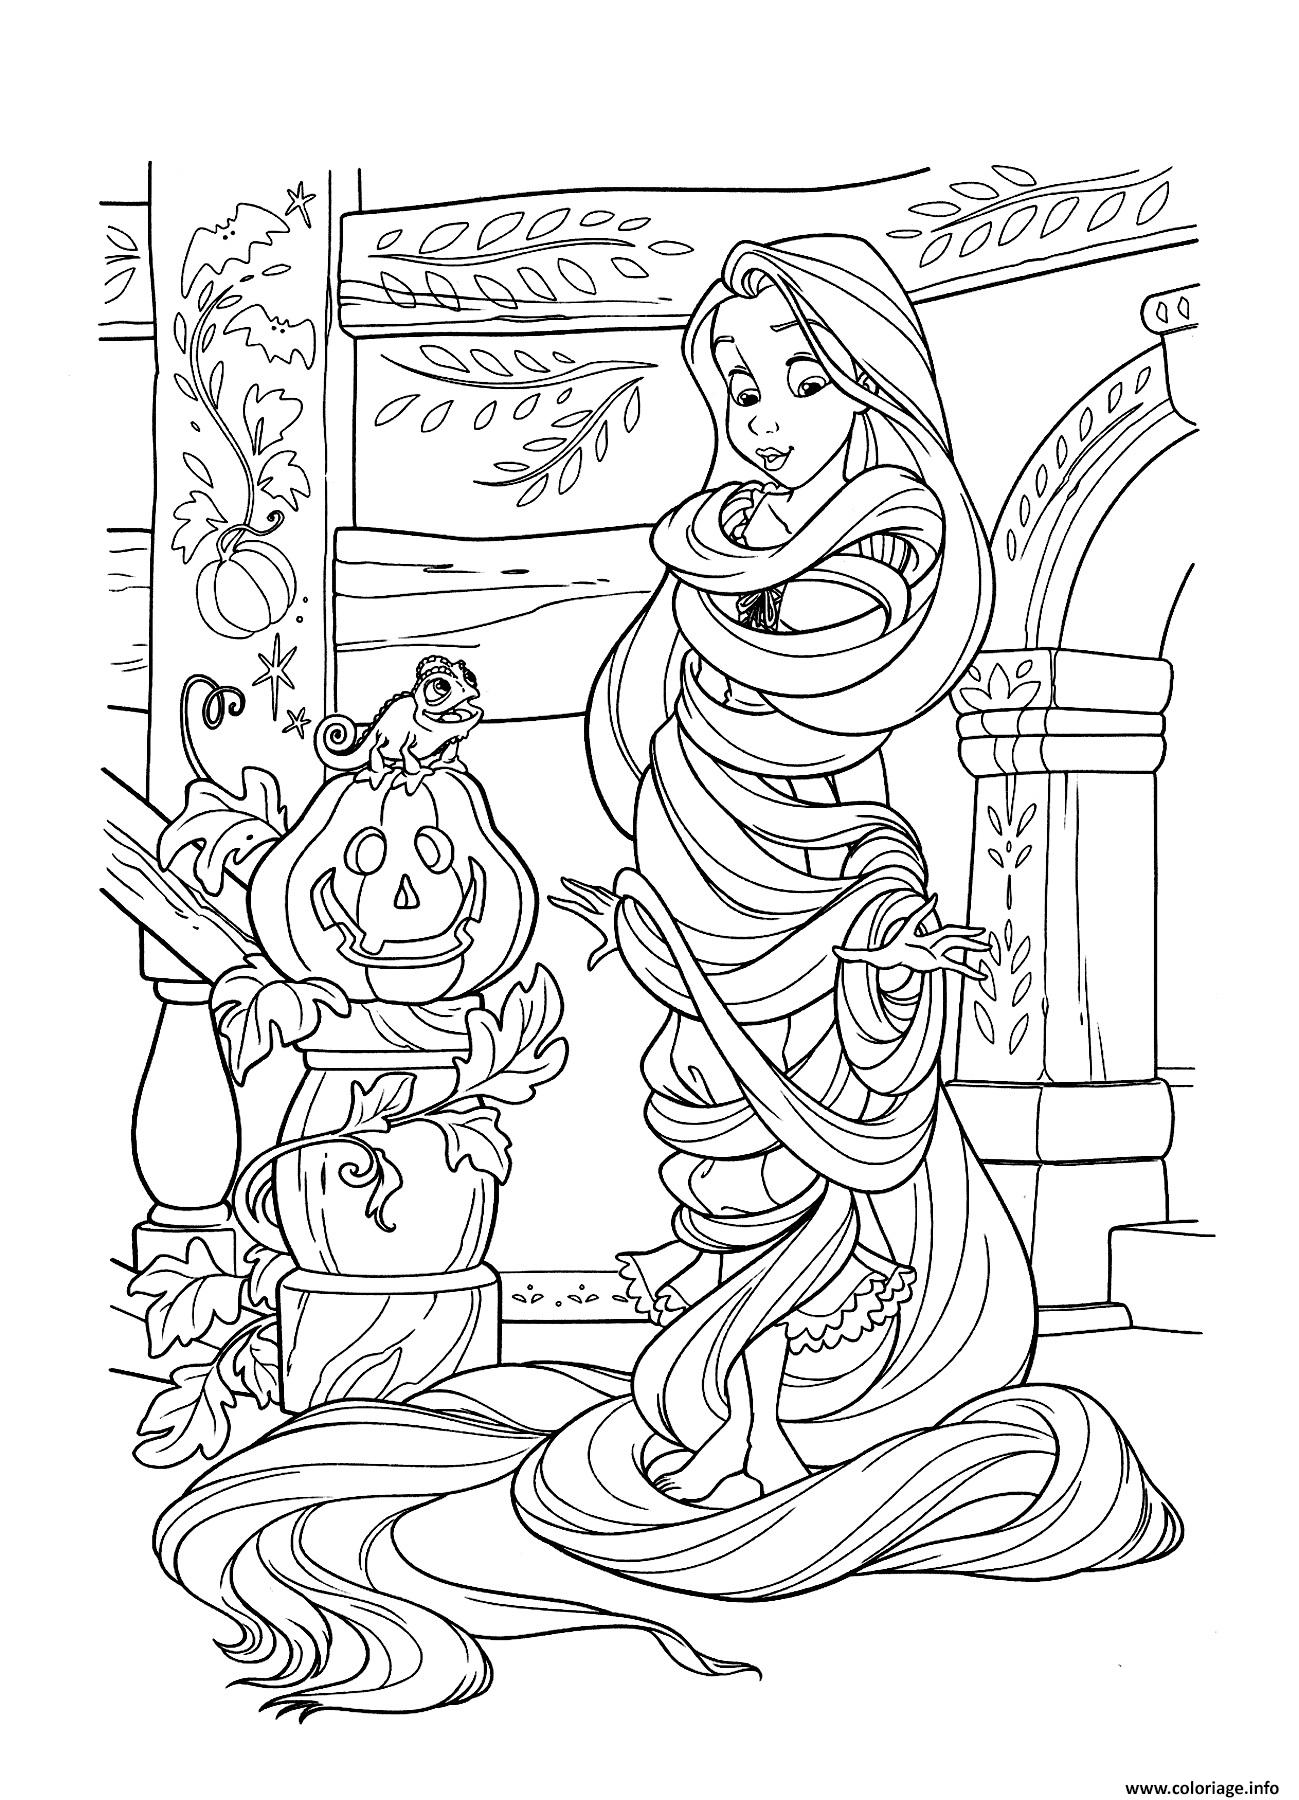 Coloriage halloween disney princesse raiponce dessin - Coloriage disney ...